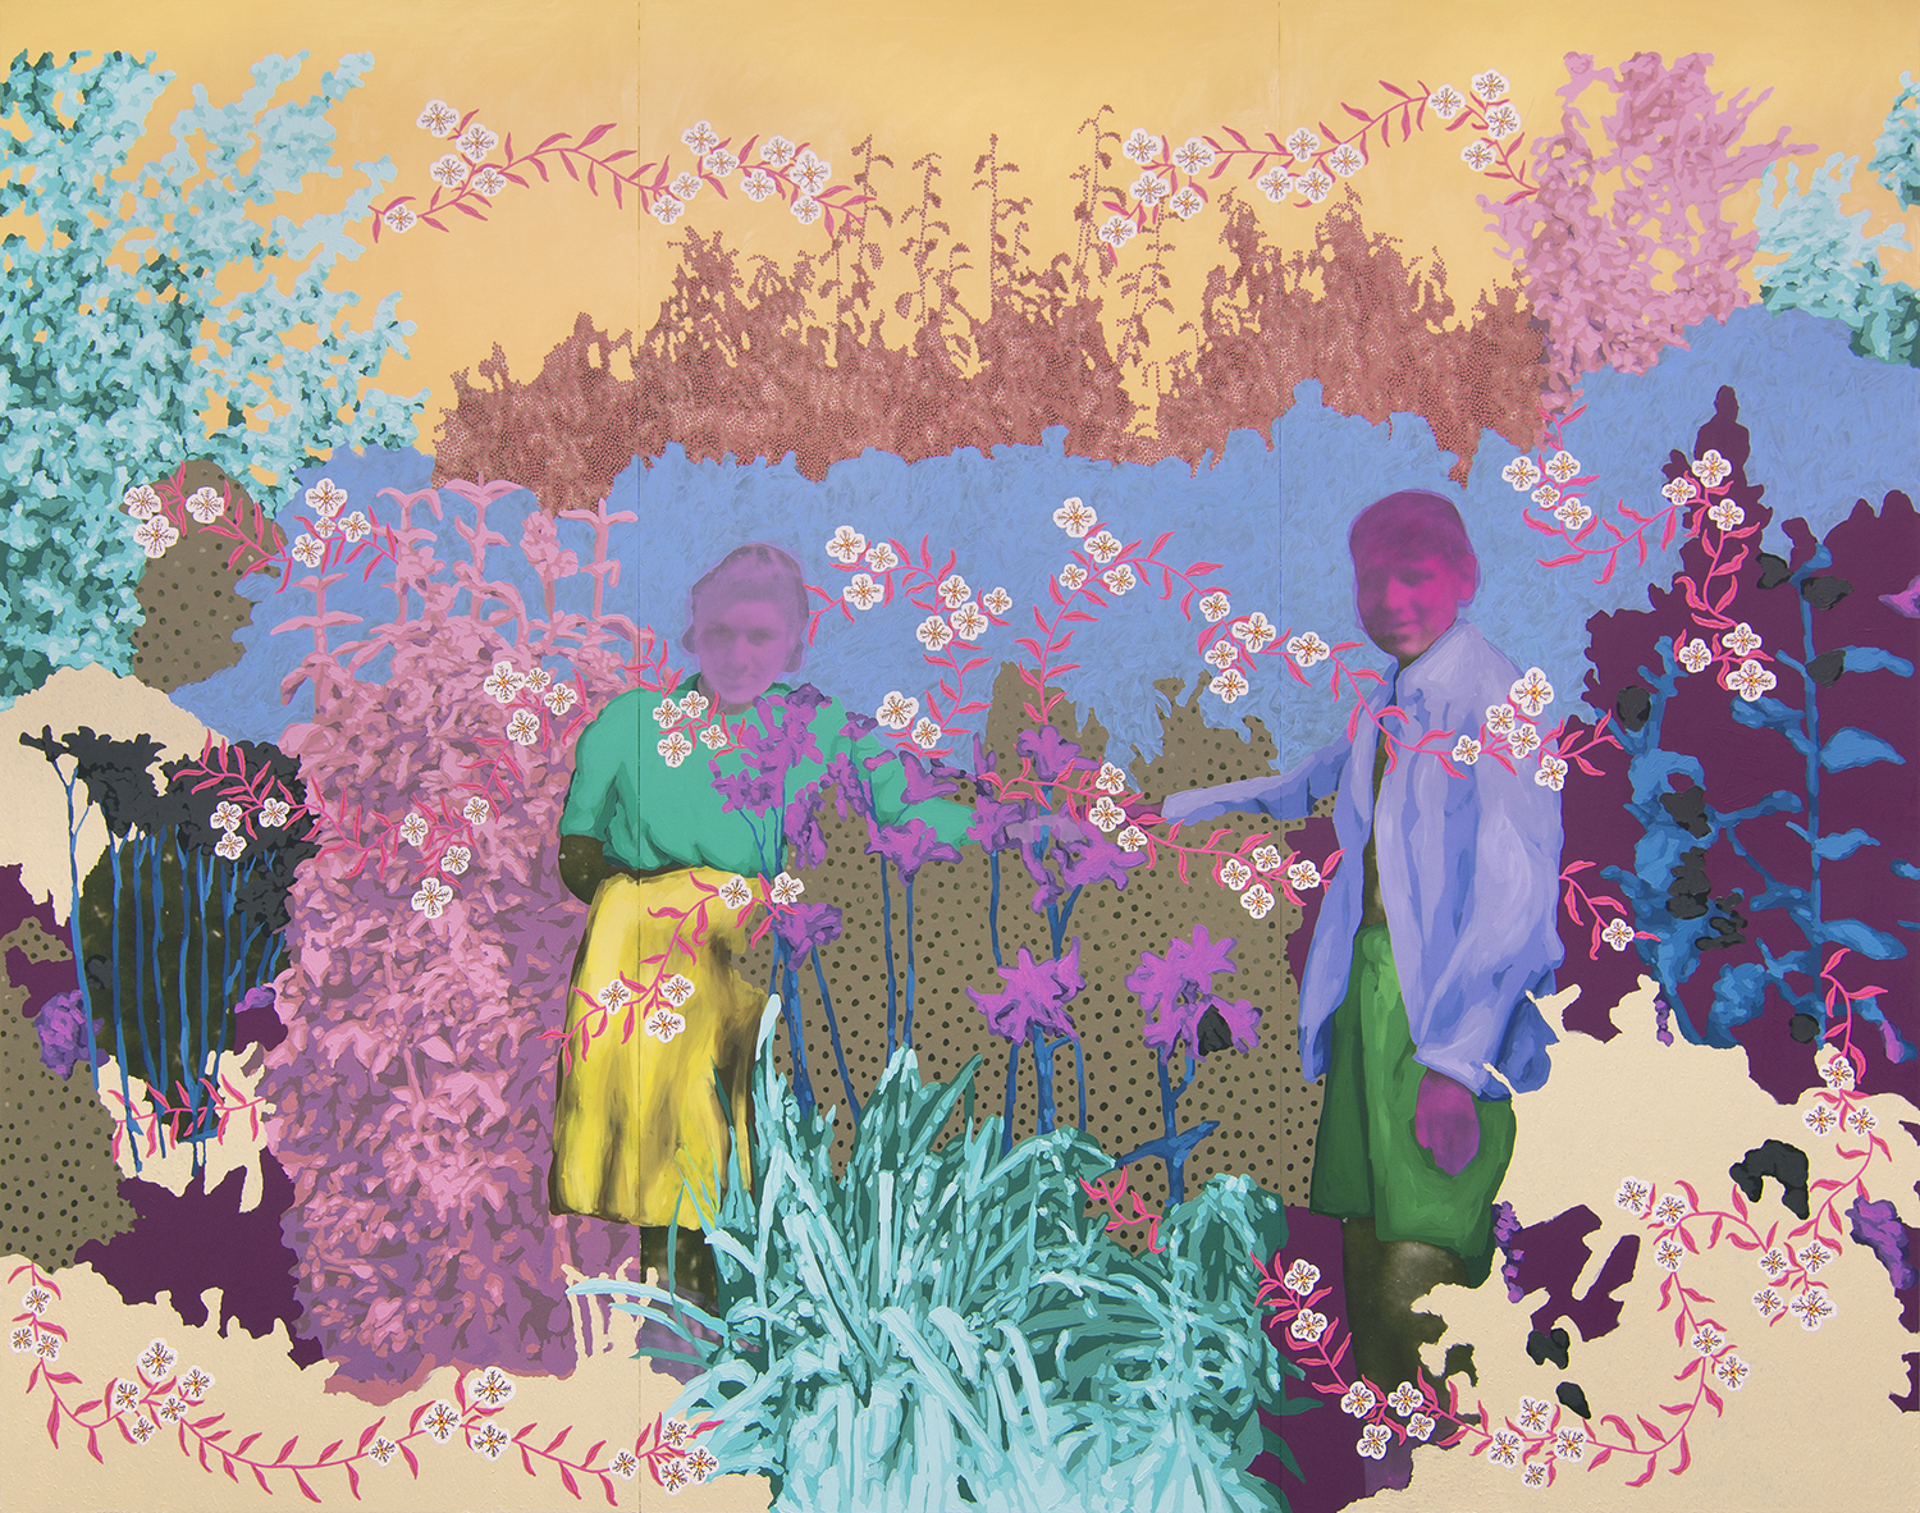 Untitled (Sweethearts Among the Lilies) by Daisy Patton